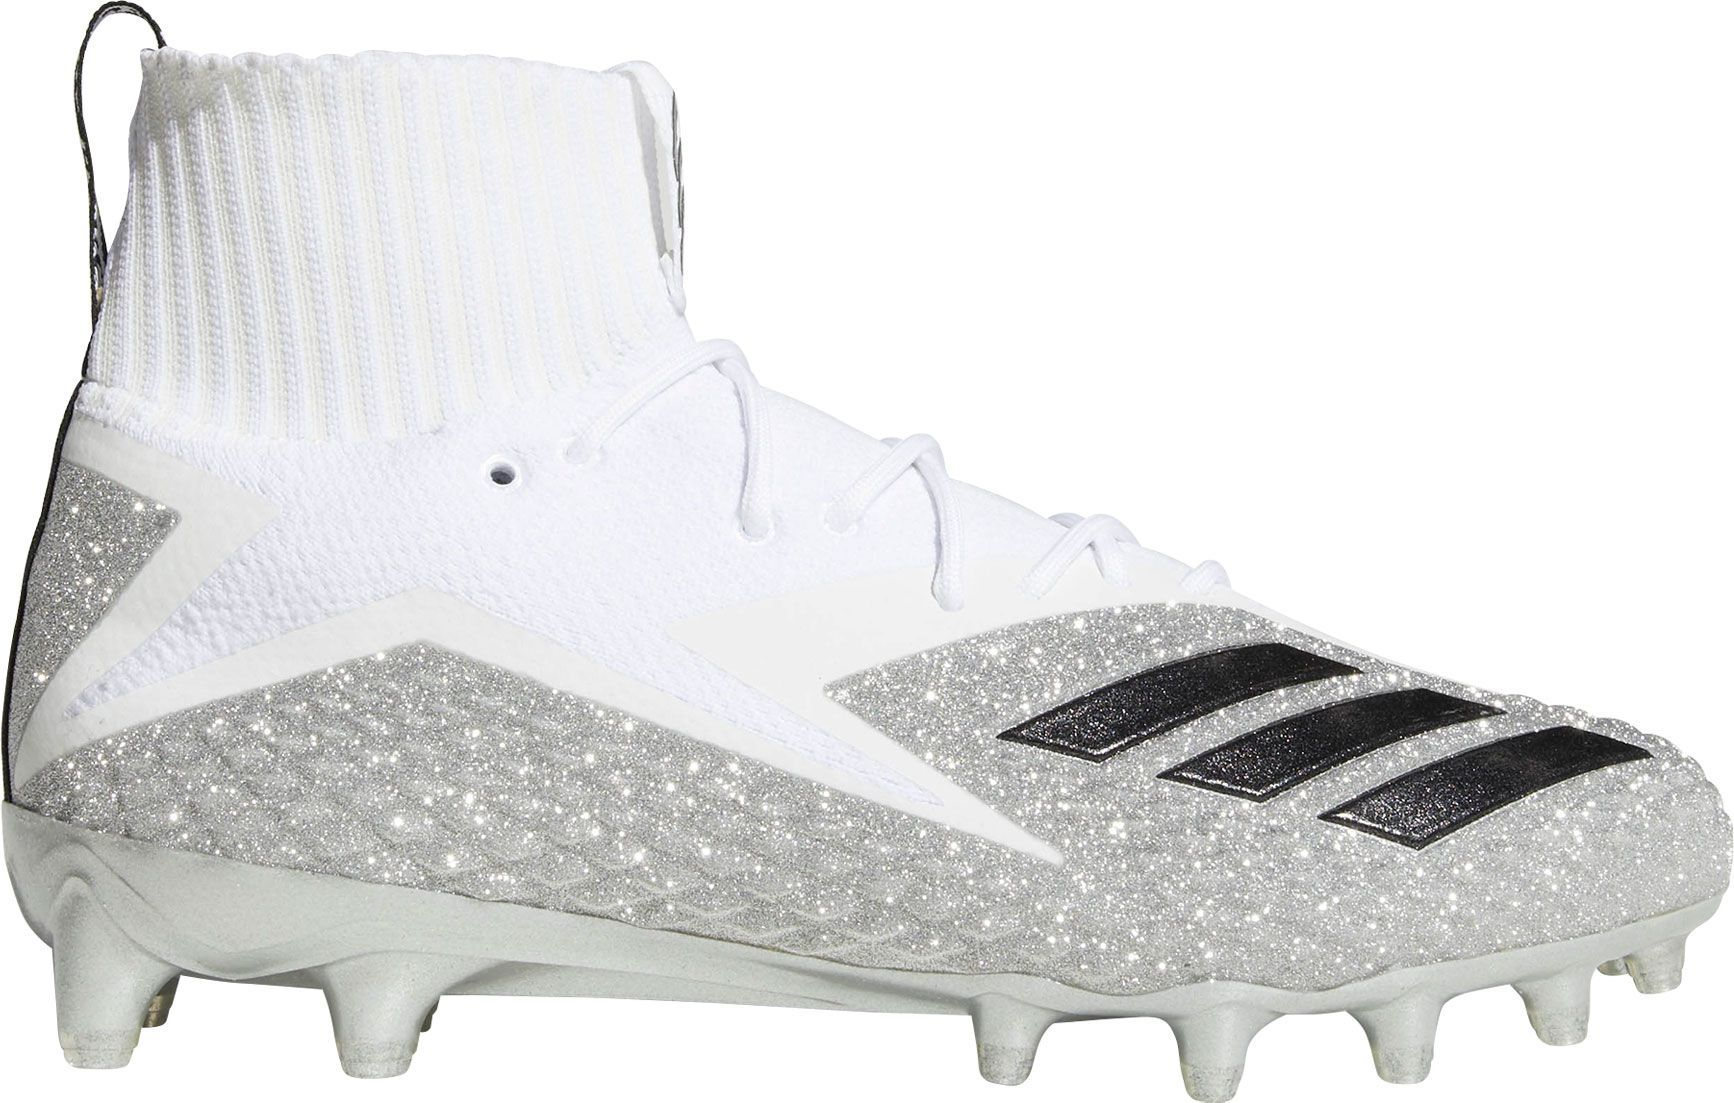 Mens White Adidas Football Cleats Off 50 Www Dolphincenter Com Tr